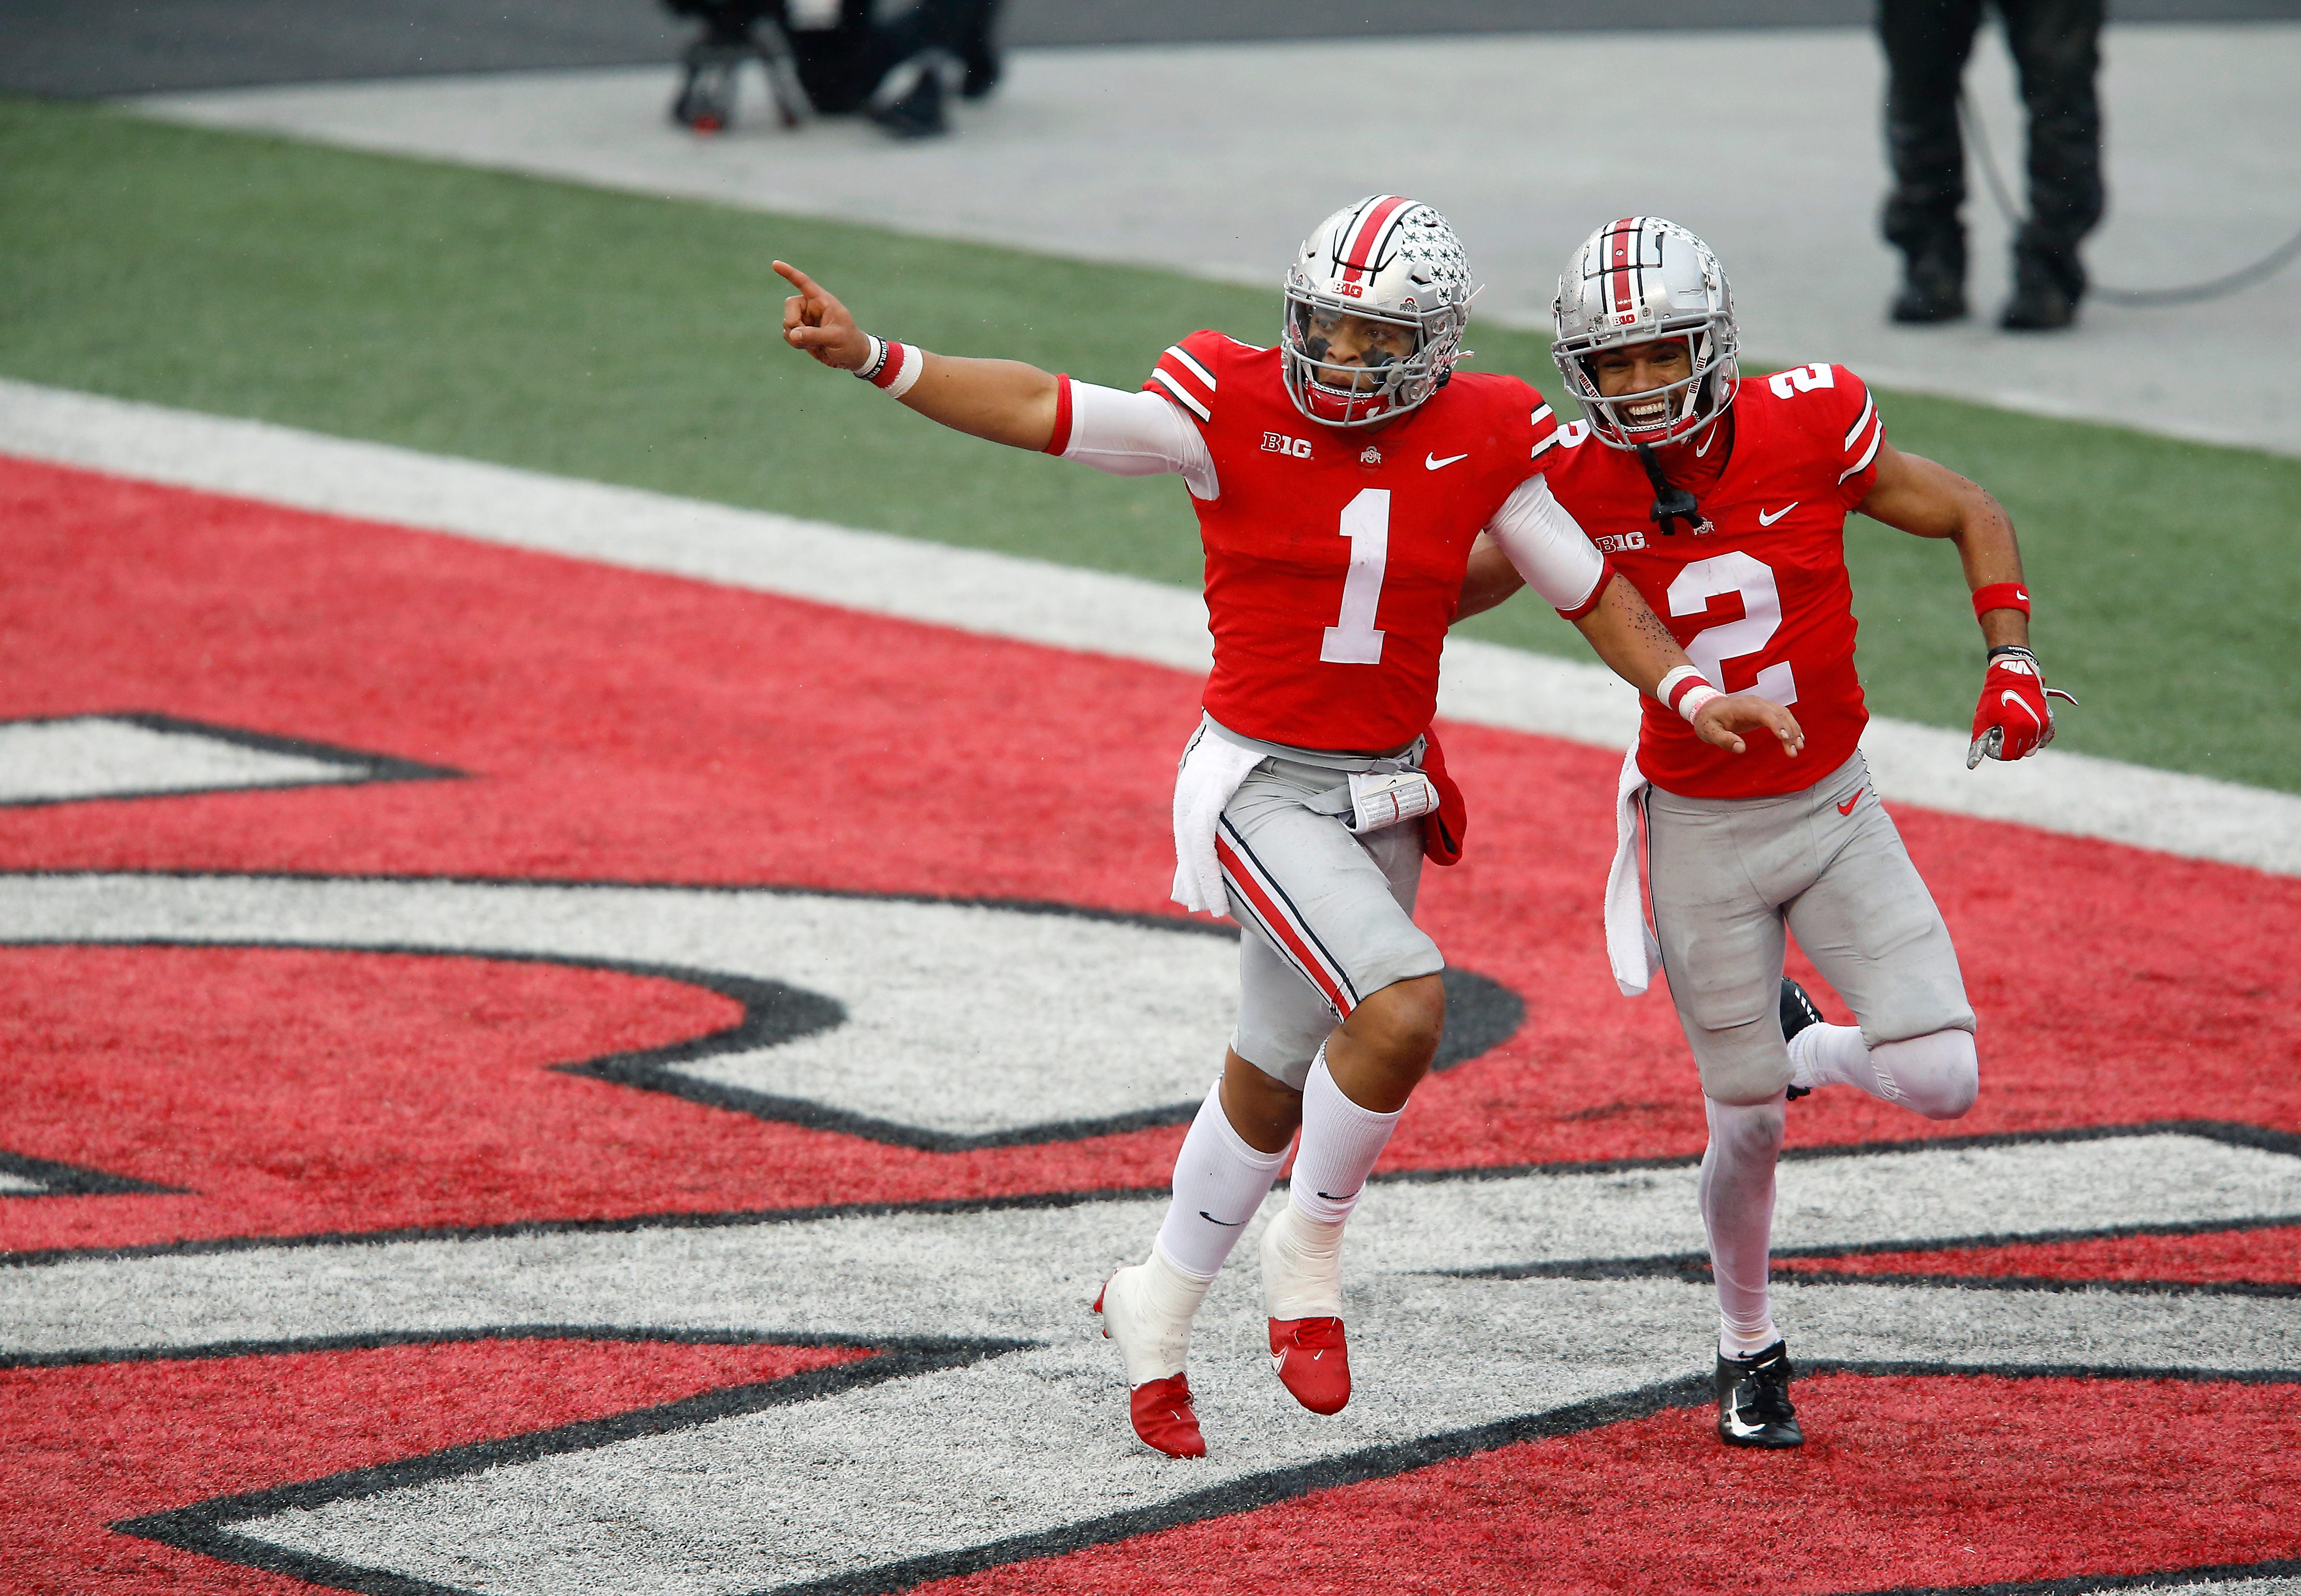 No. 4 Ohio State cleared to play Saturday at Michigan State, one week after Buckeyes' coronavirus outbreak